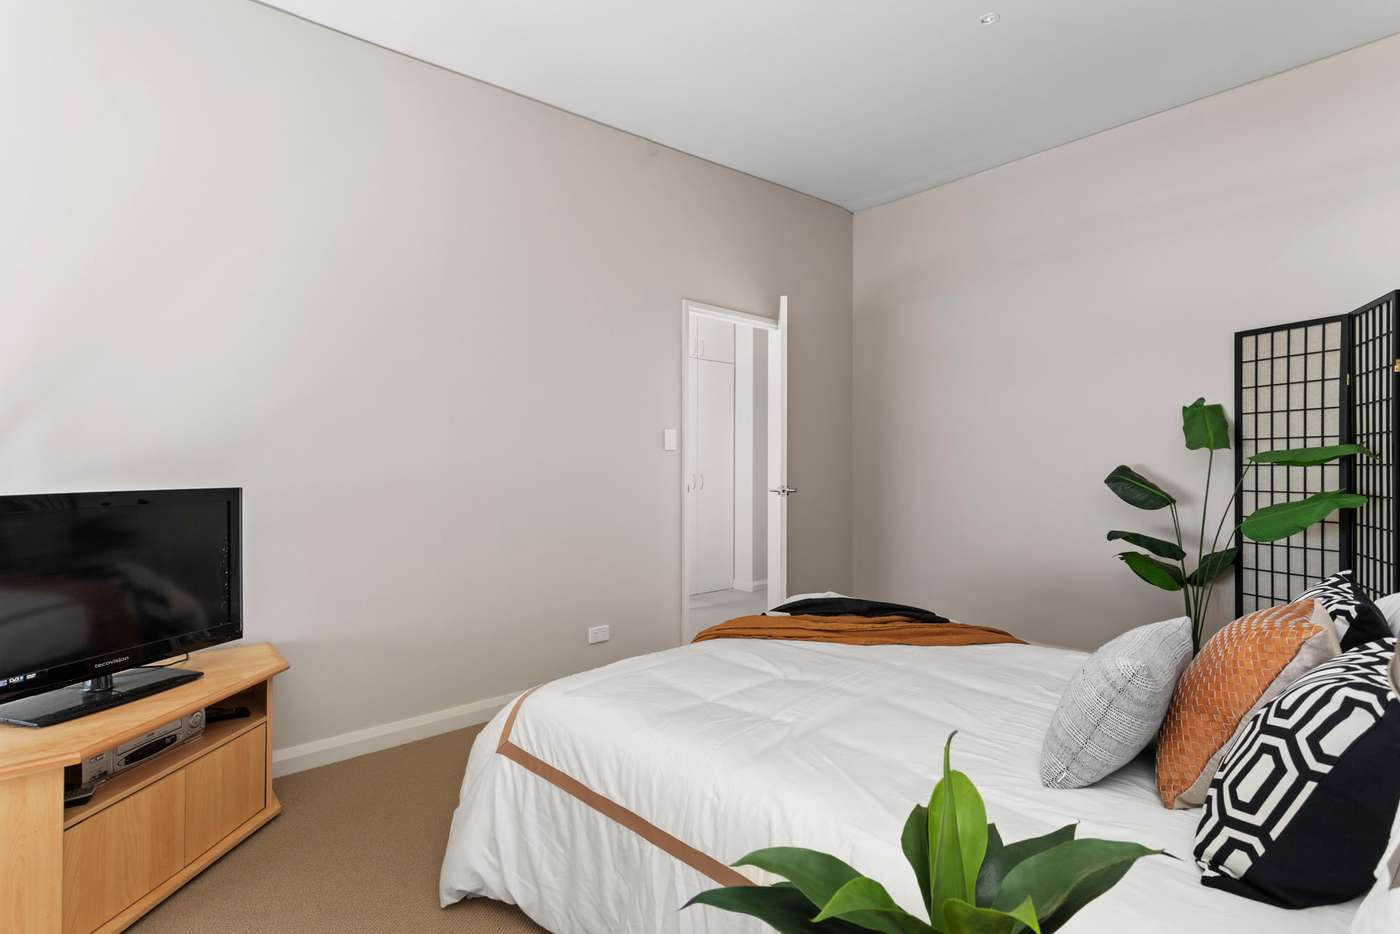 Seventh view of Homely unit listing, 9/4 Centro Avenue, Subiaco WA 6008